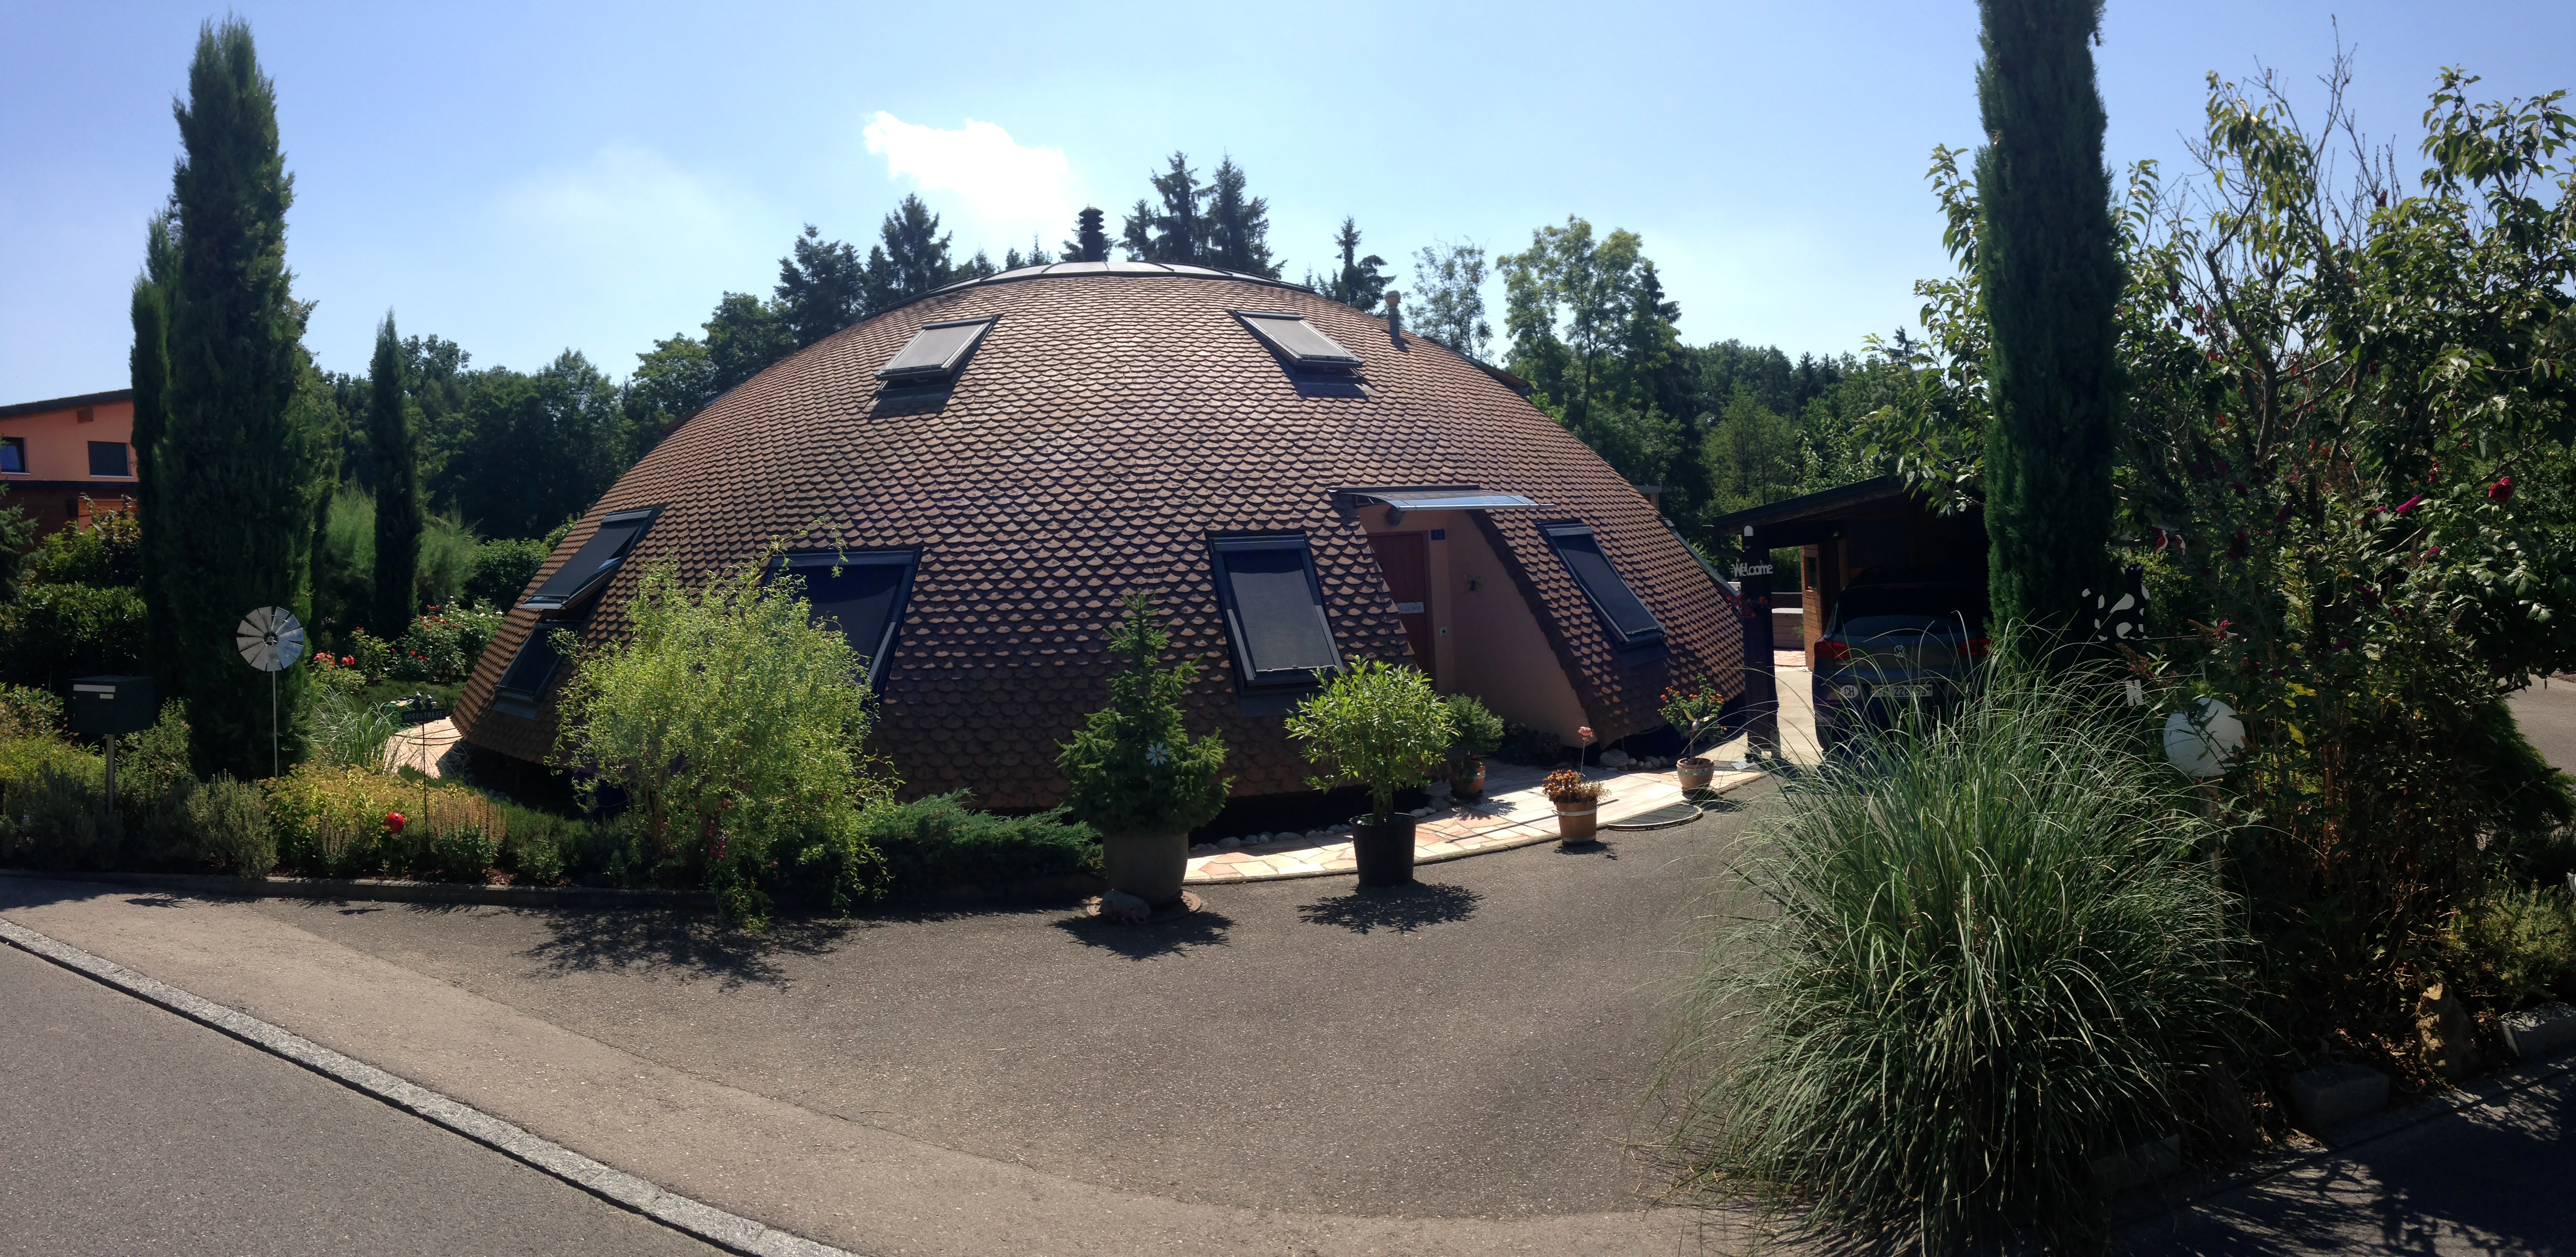 File Dome Shaped House In Switzerland Jpg Wikimedia Commons